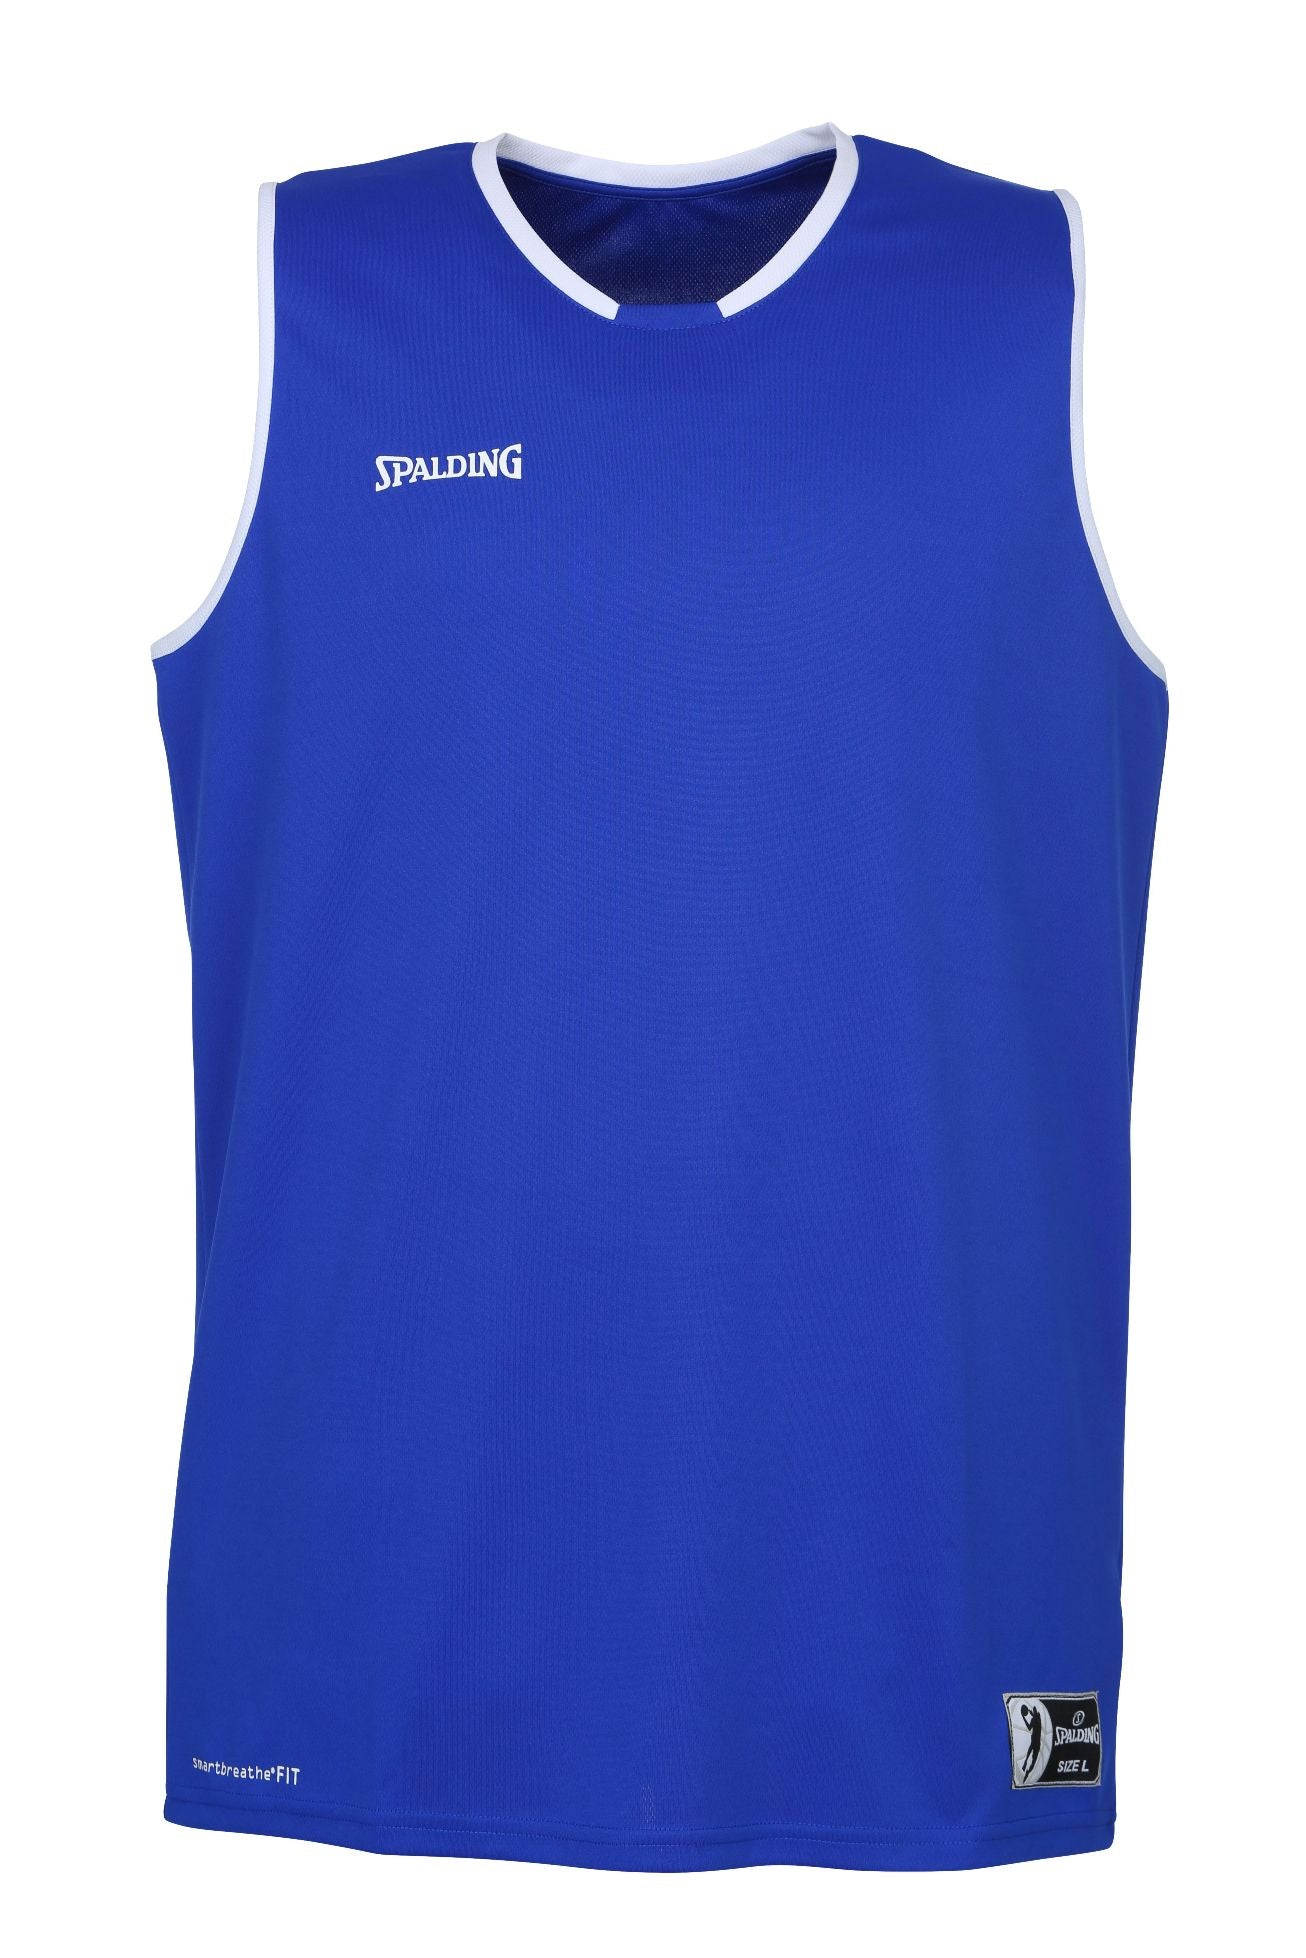 Teamwear - Spalding Kids' Move Jerseys - Royal Blue/White - SP-3002140-03